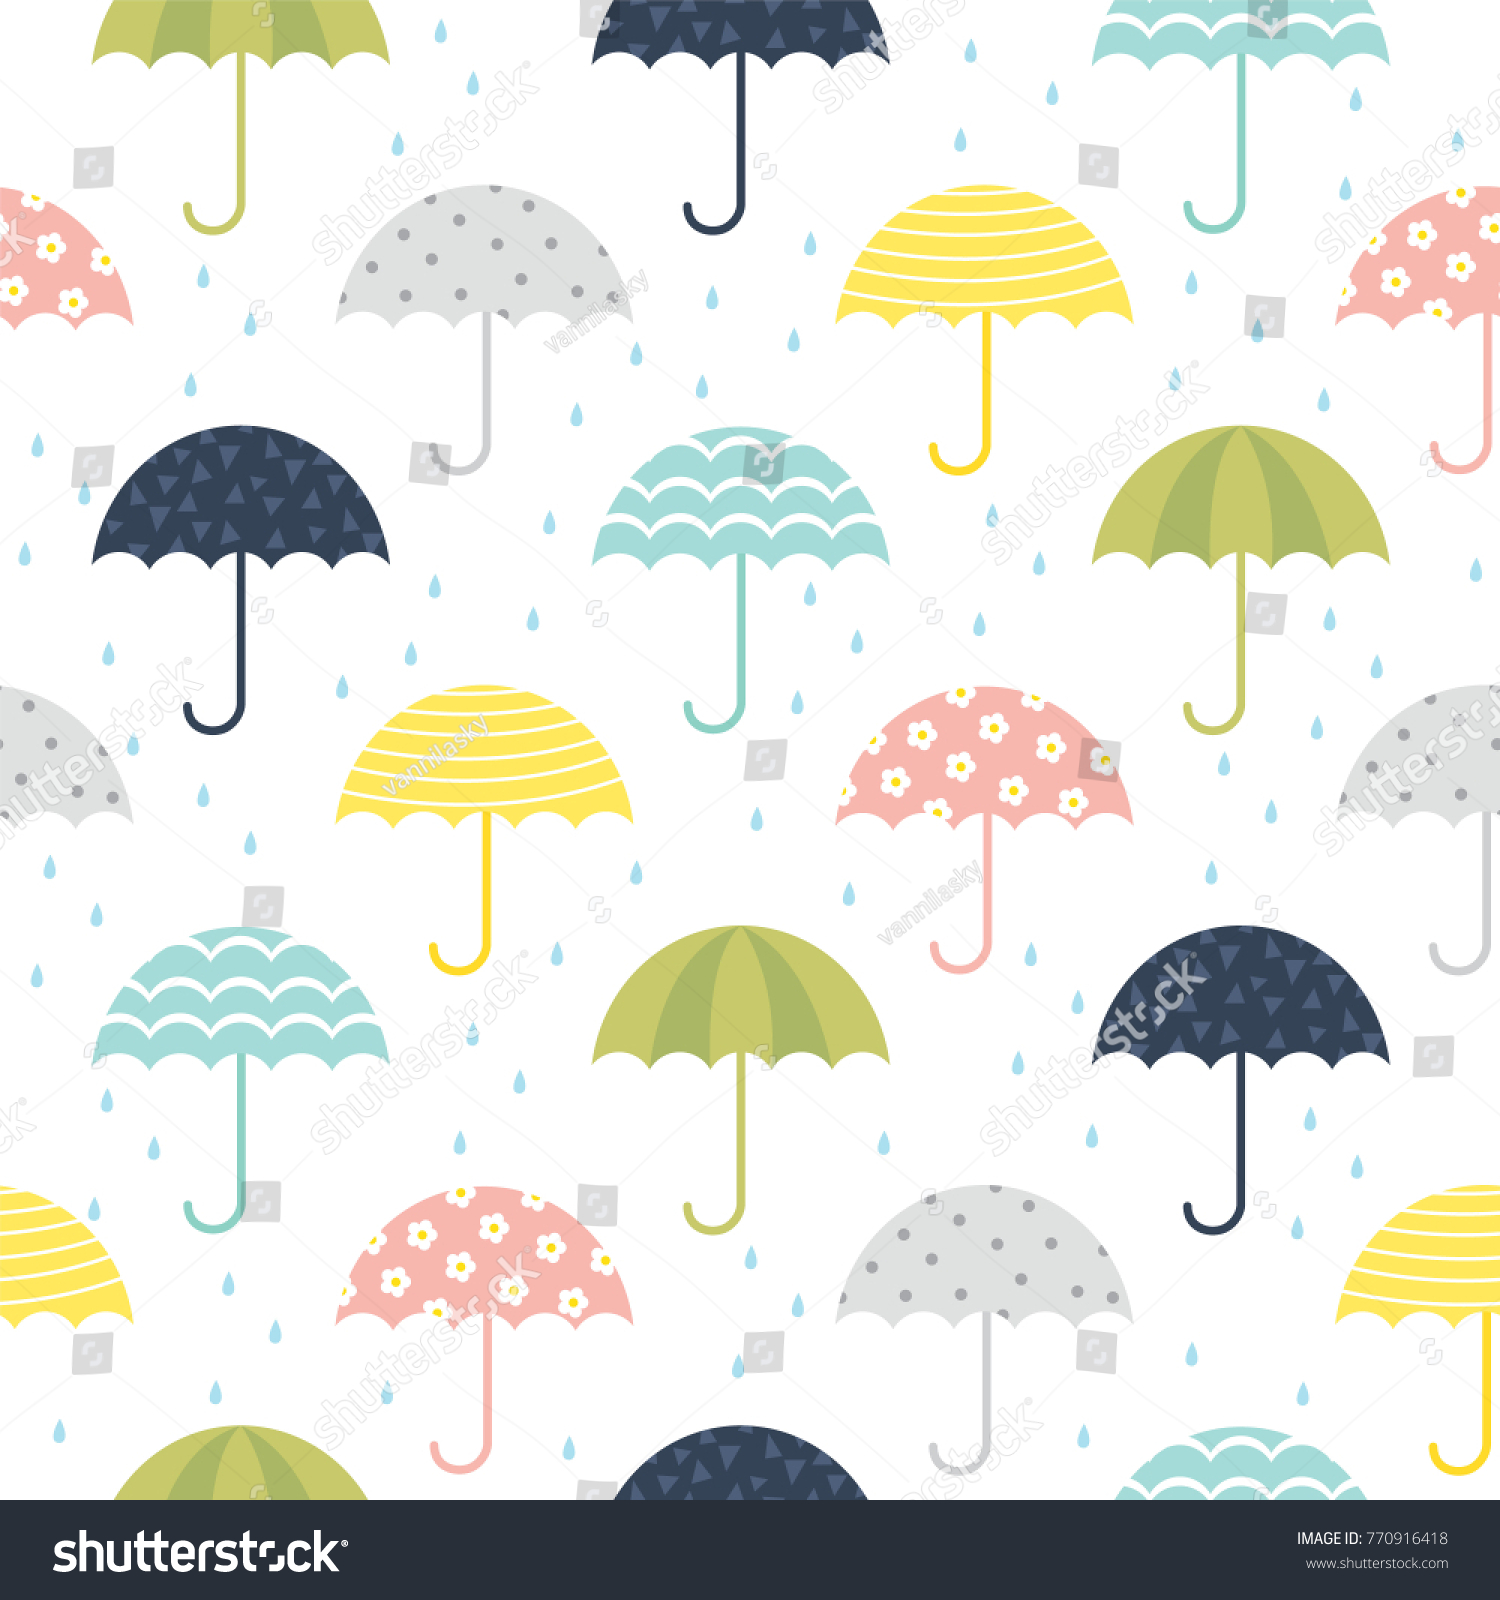 Umbrella Pattern Interesting Inspiration Ideas